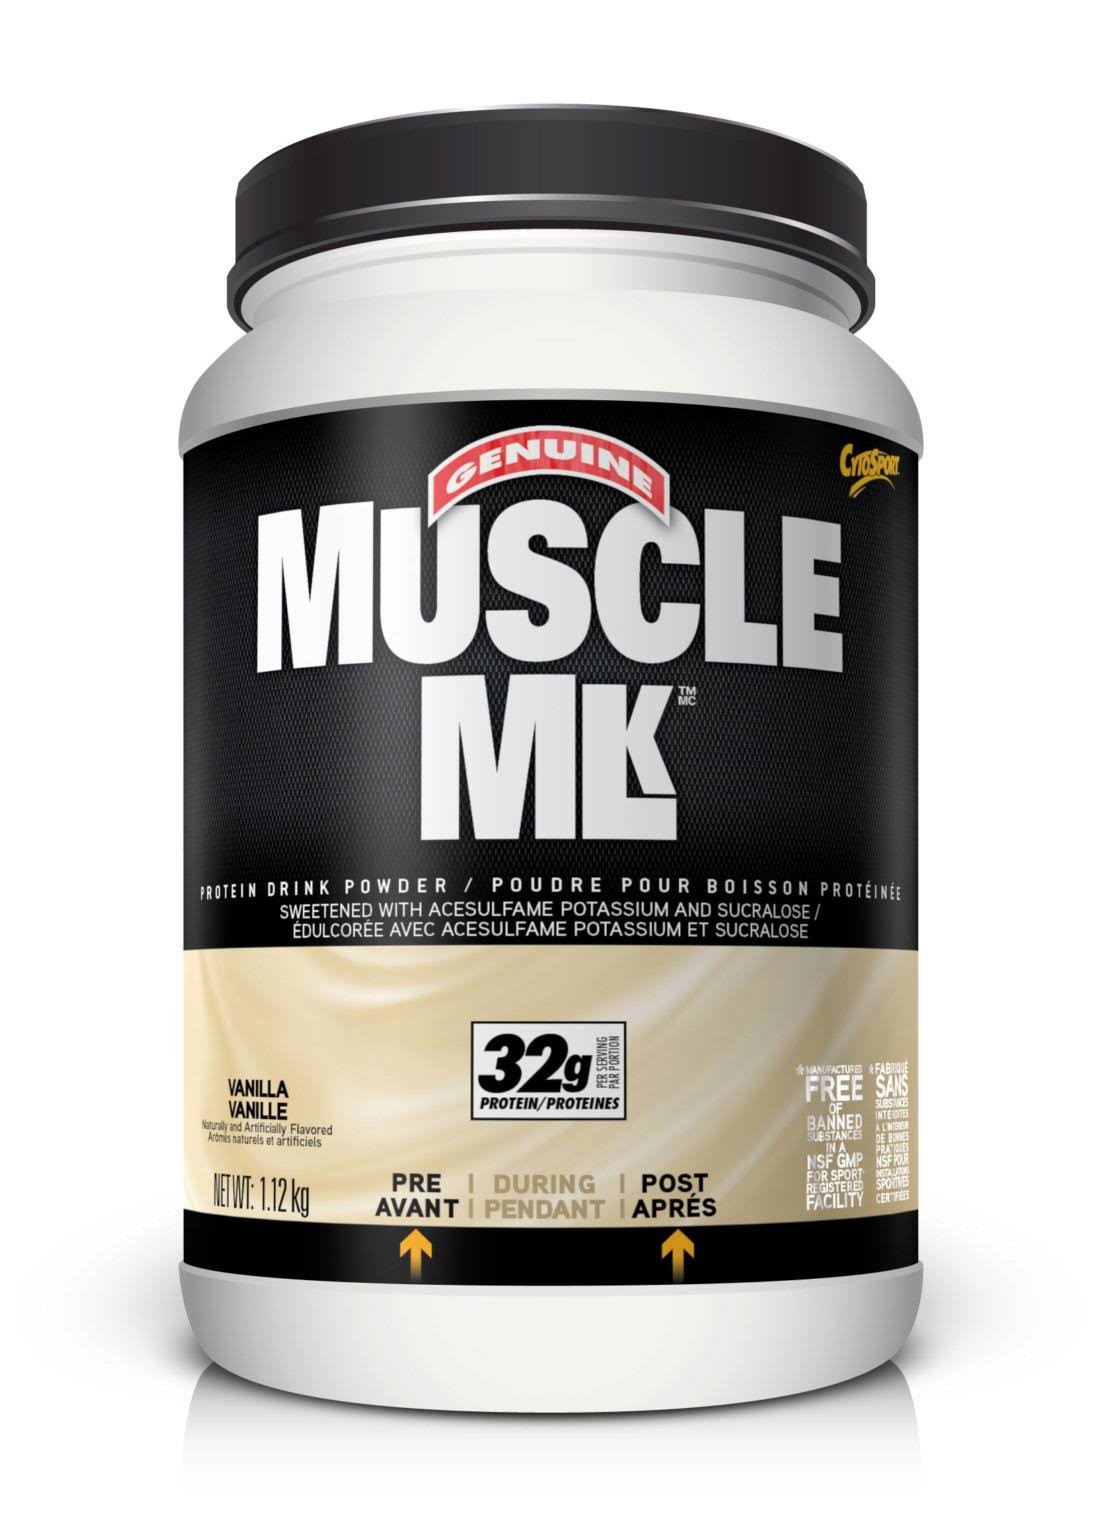 Cytosport Muscle Nutritional Supplement - Milk Vanilla, 2.48lbs